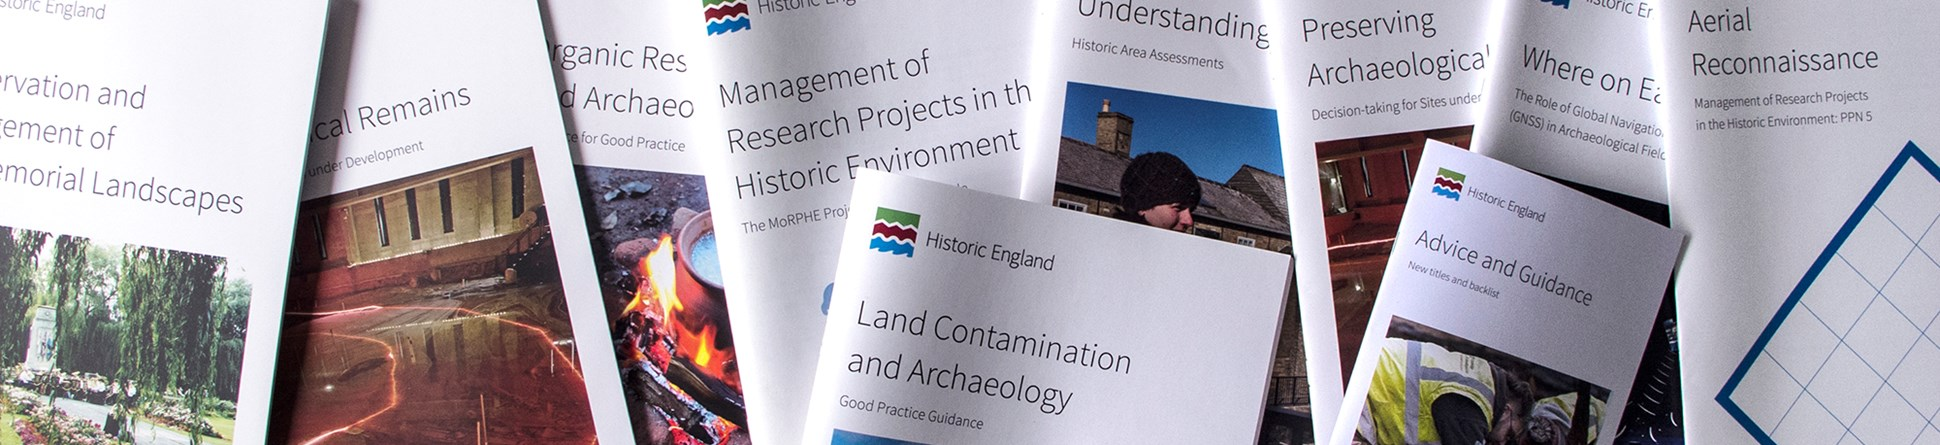 Front covers of Historic England advice and guidance documents